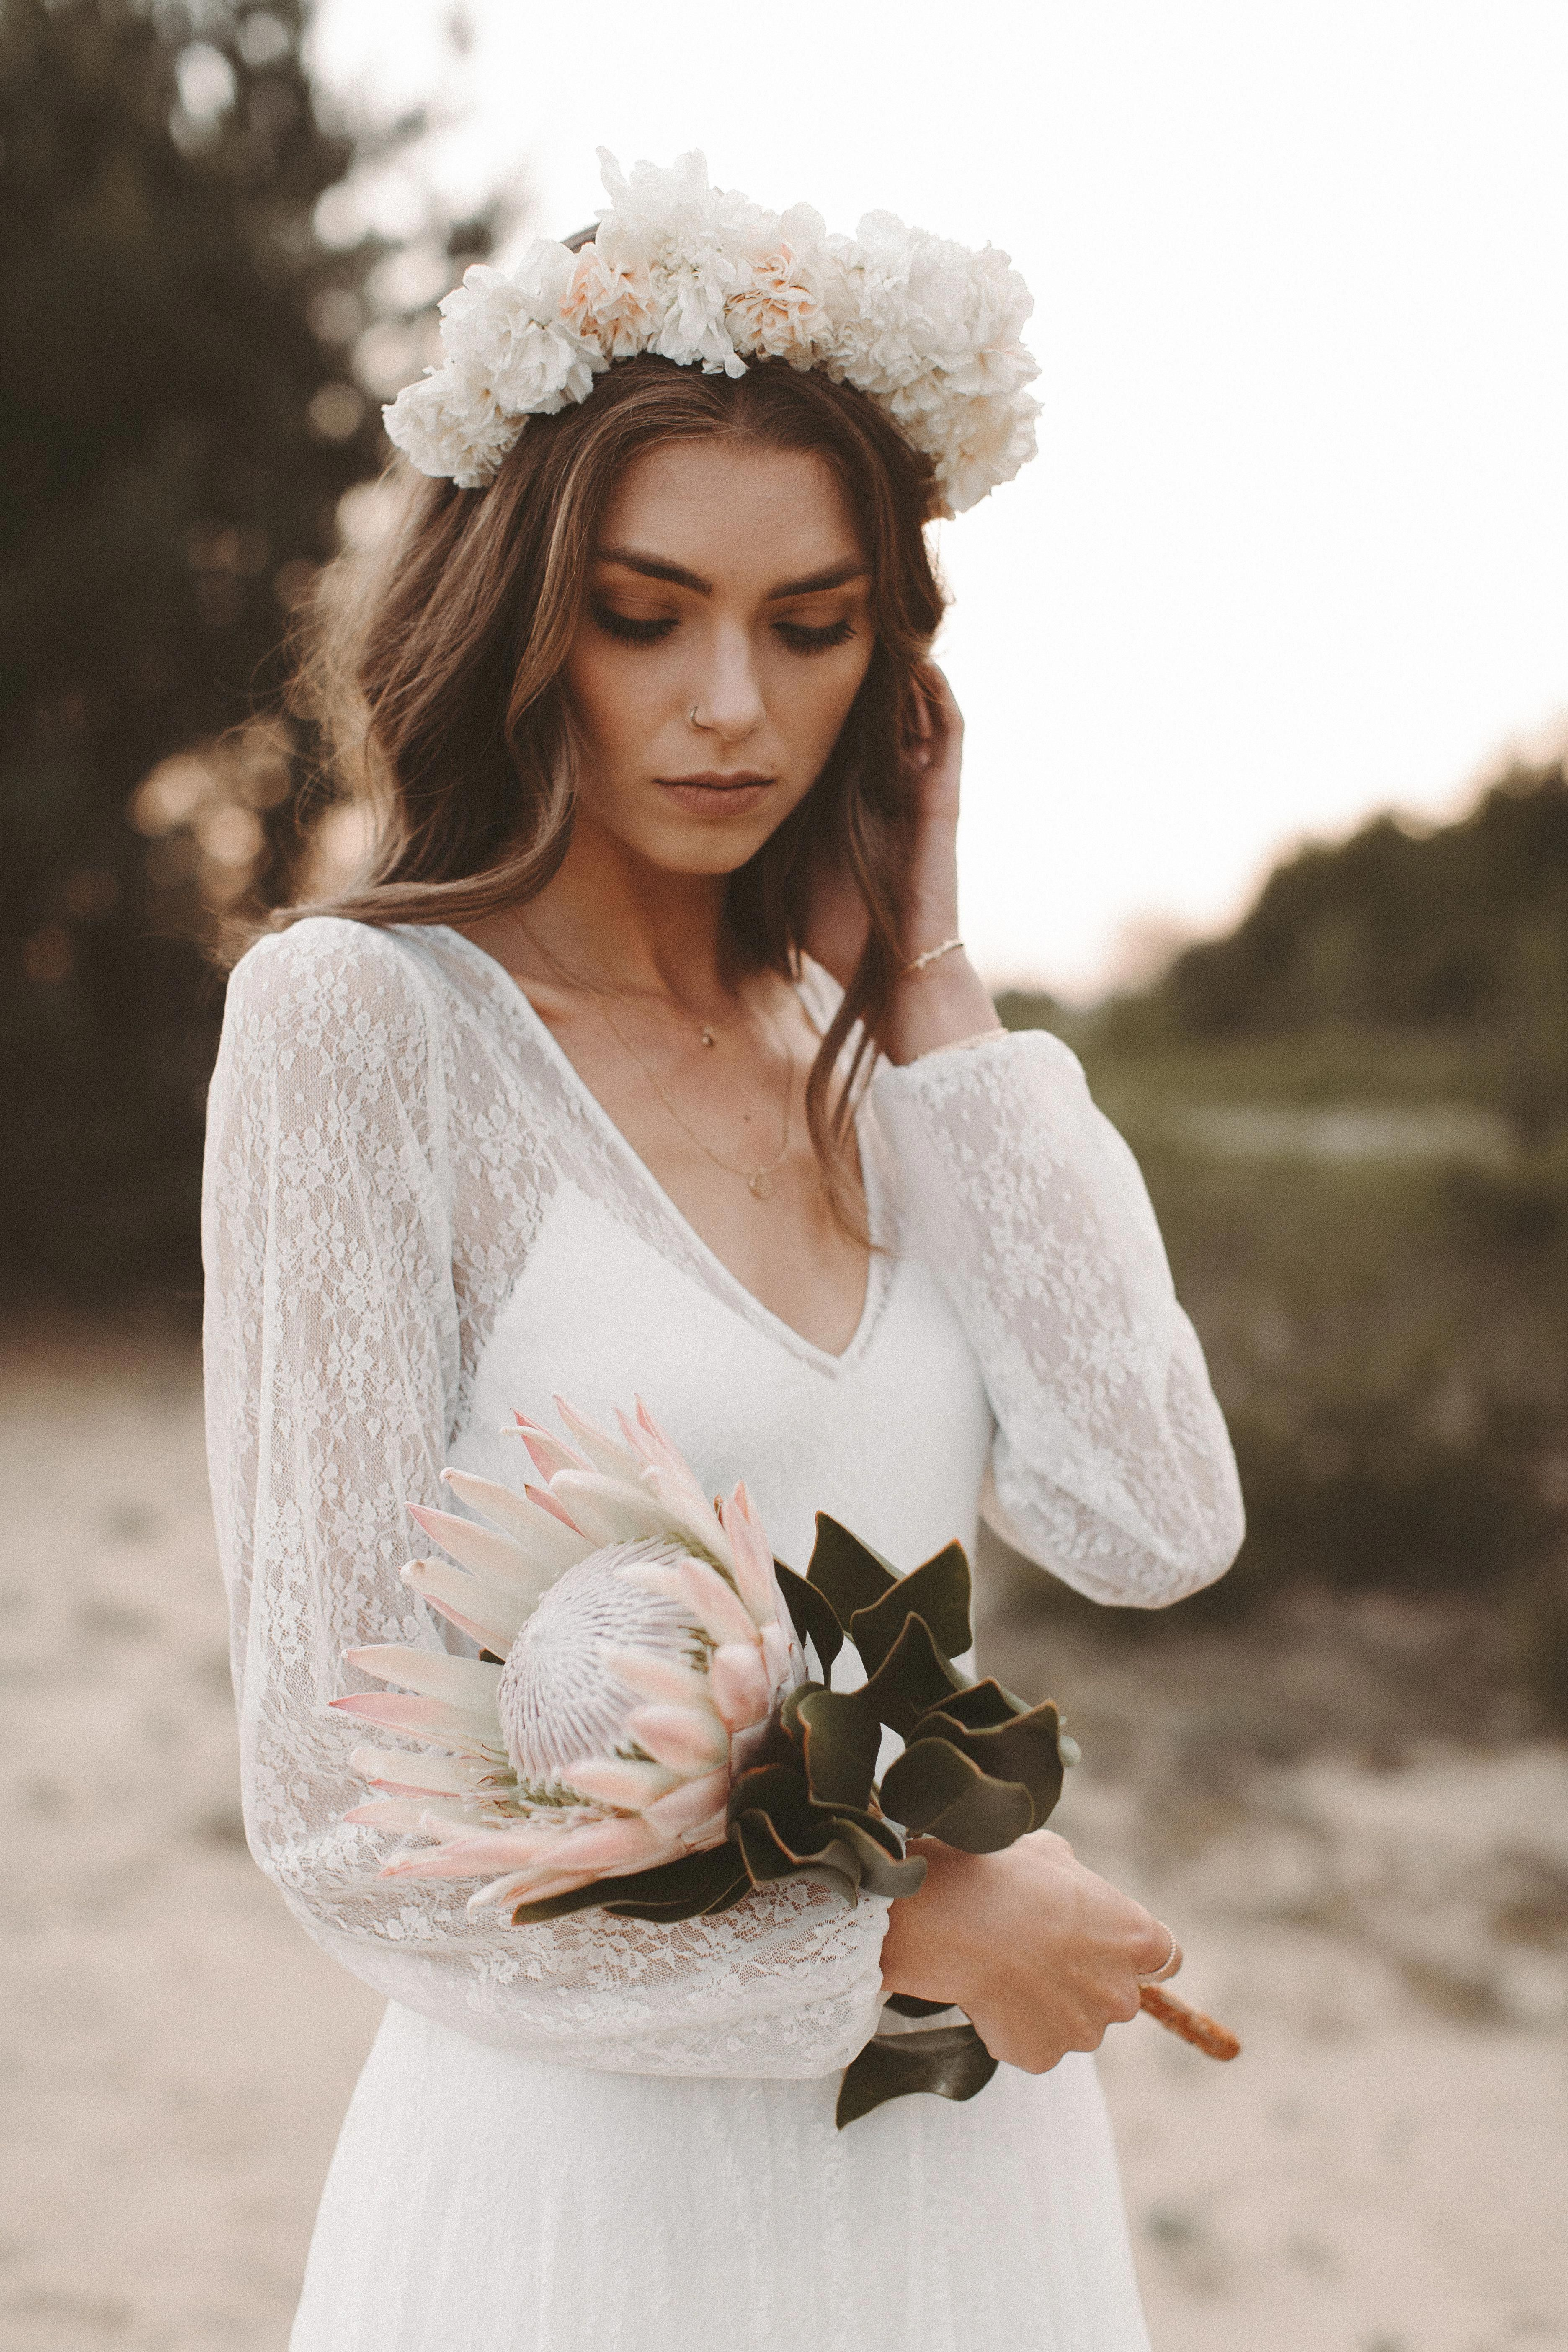 Some Of My Favorite Boho Outfit I Like The Flow And Artistic Of A Given Bohe Vintage Wedding Dress Boho Wedding Dresses Vintage Lace Sleeves Diy Wedding Dress [ 5616 x 3744 Pixel ]